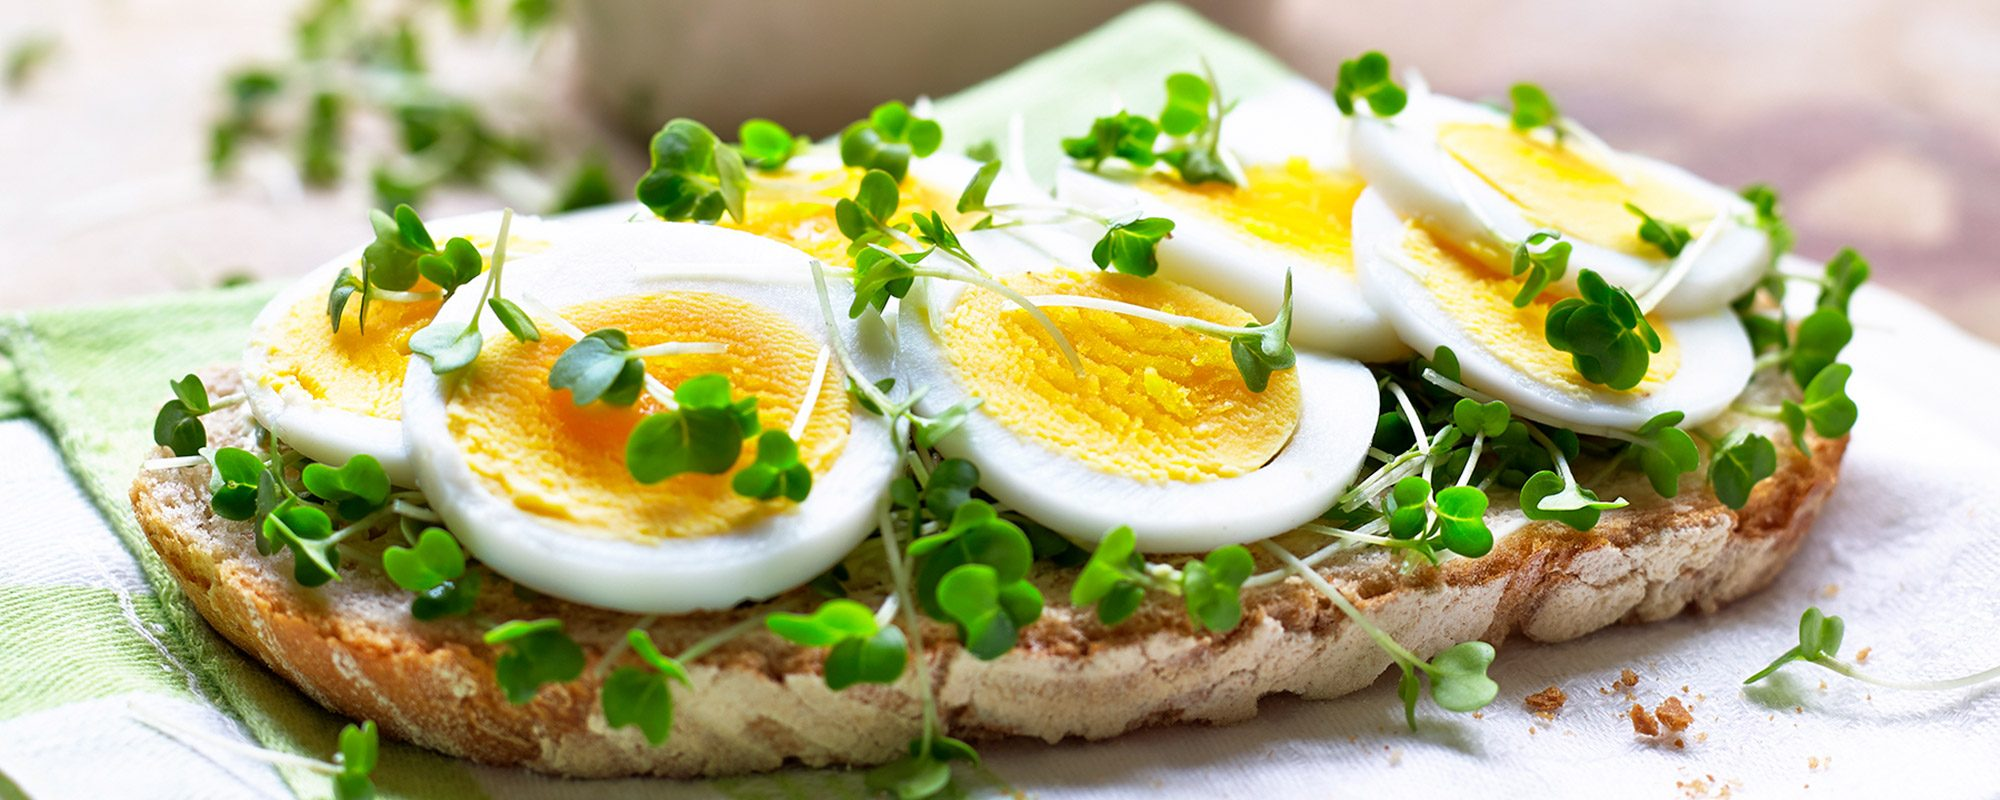 Sliced egg and salad cress on sourdough